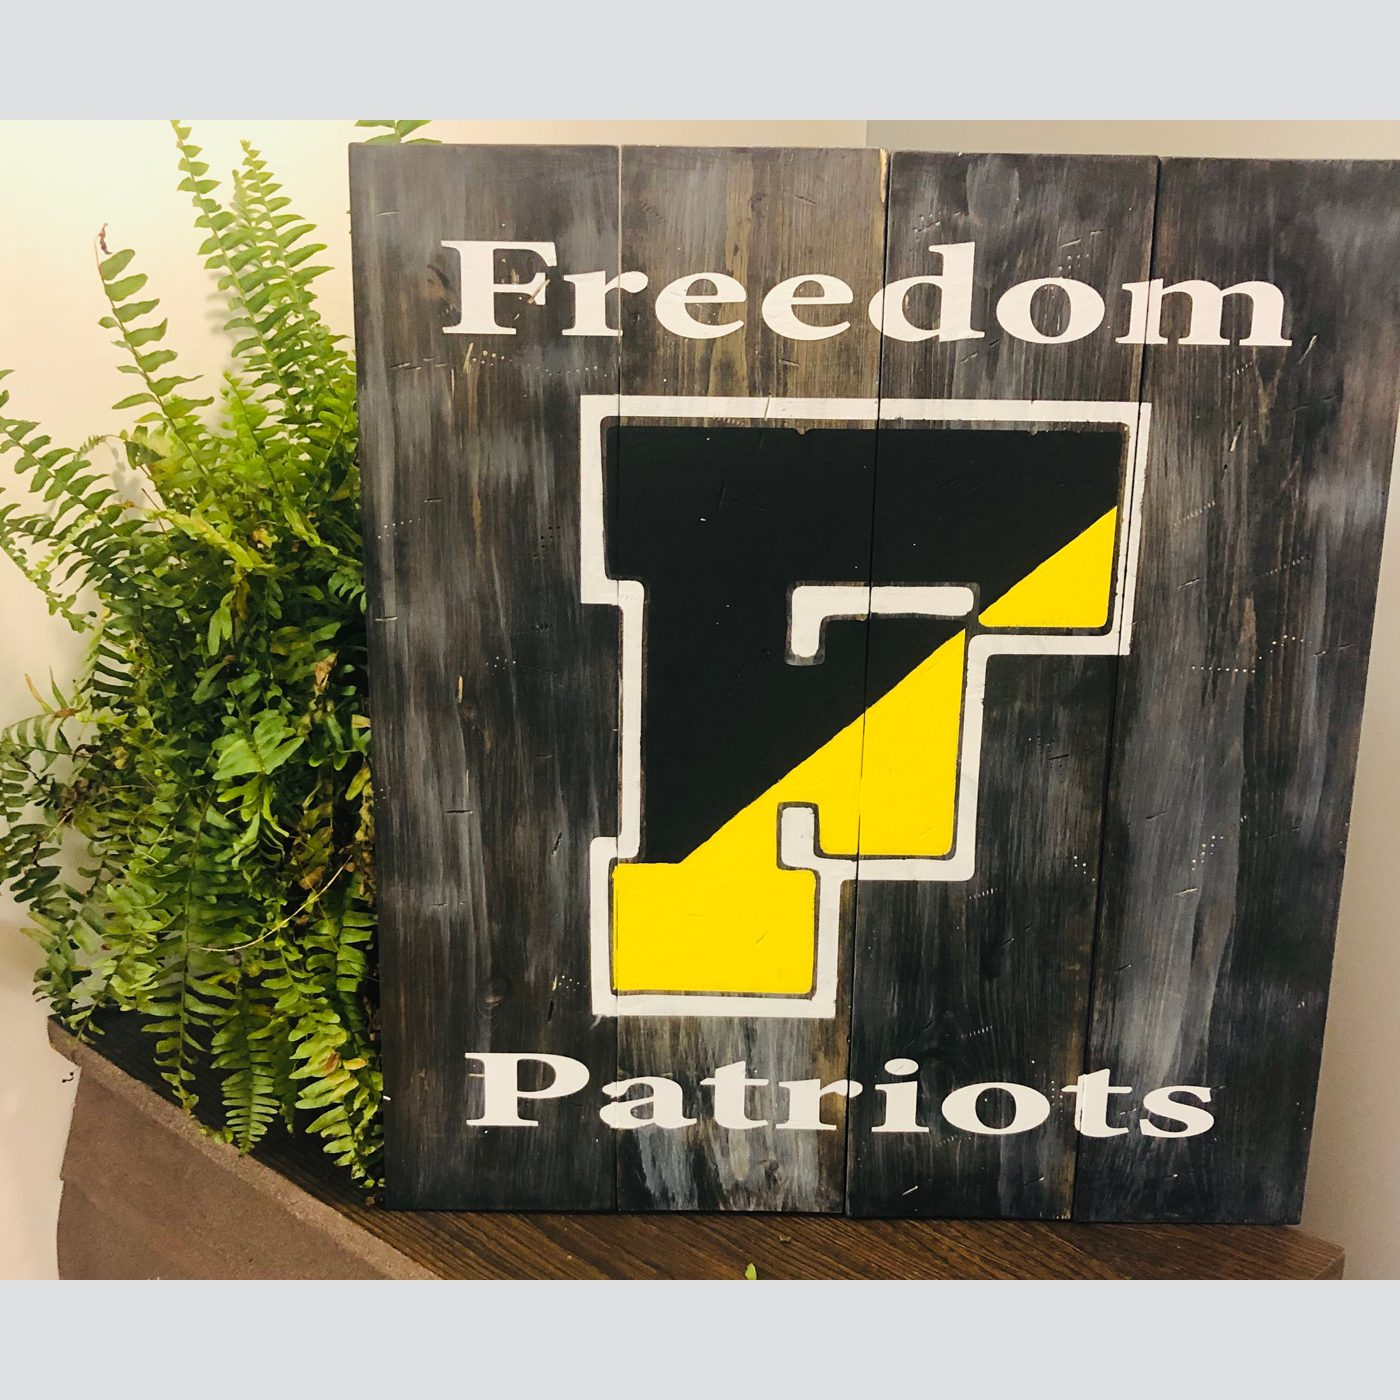 Freedom Patriots DIY wood sign sports bethlehem